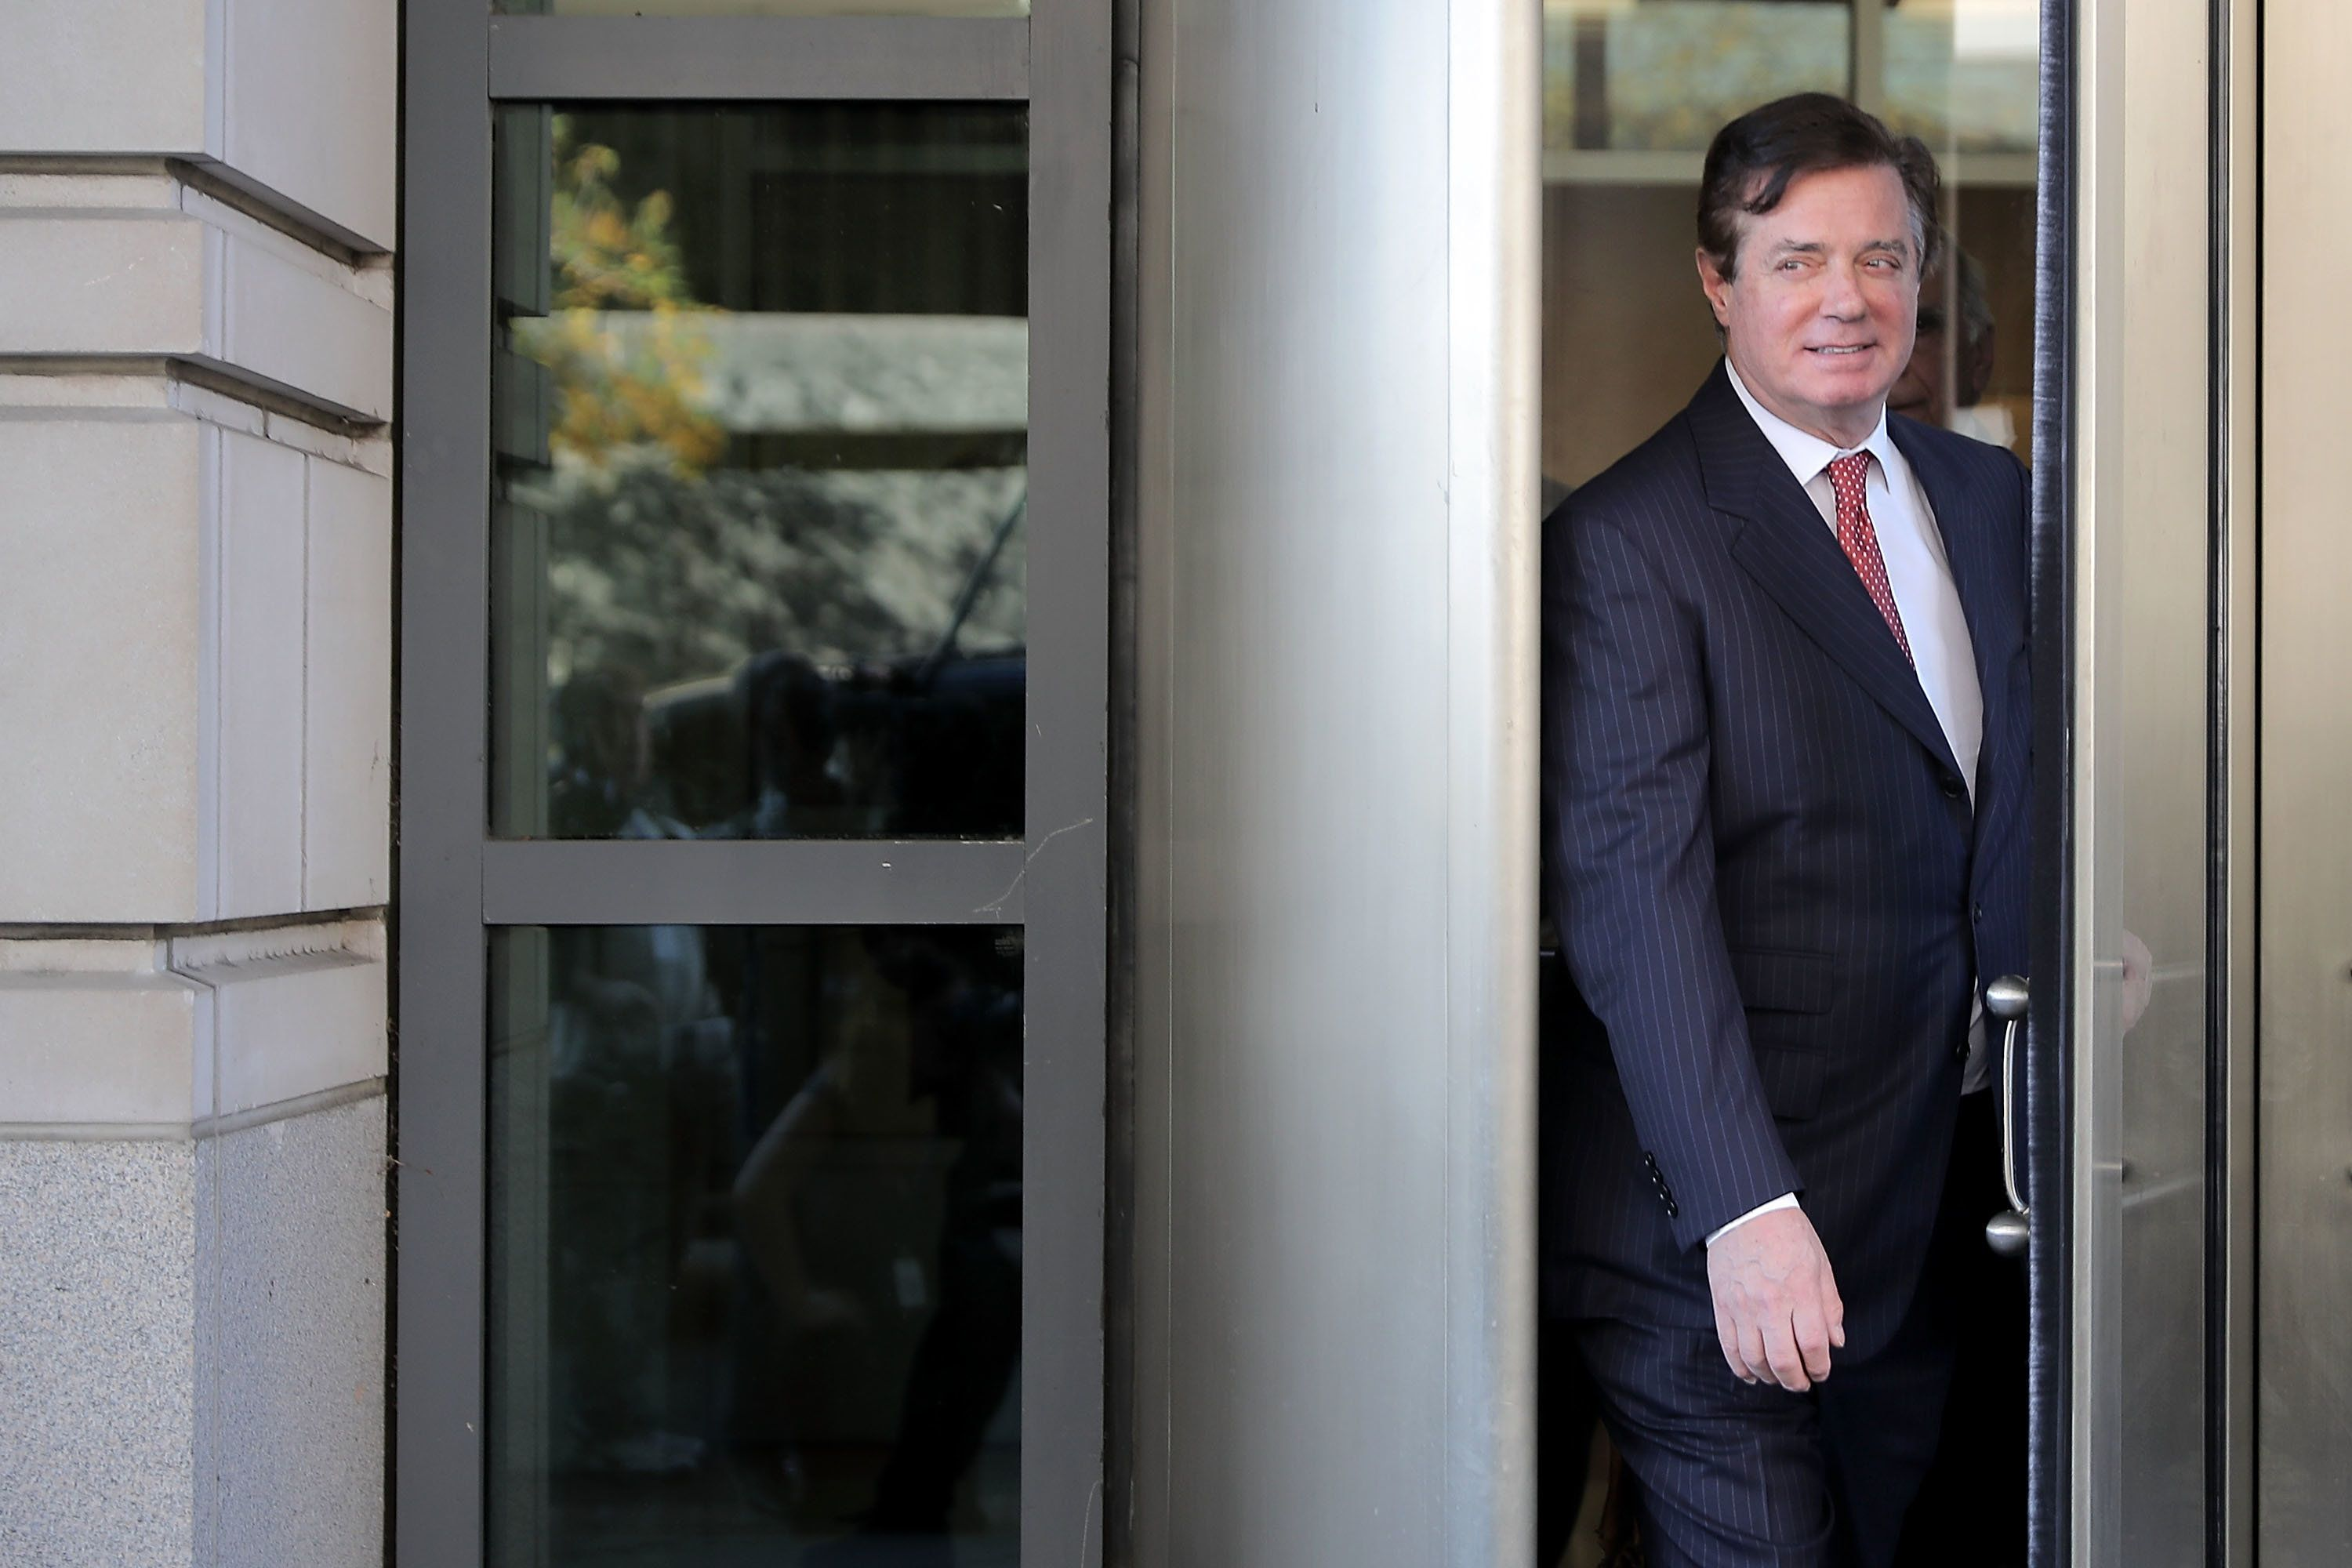 Judge Won't Free Manafort From House Arrest, Yet